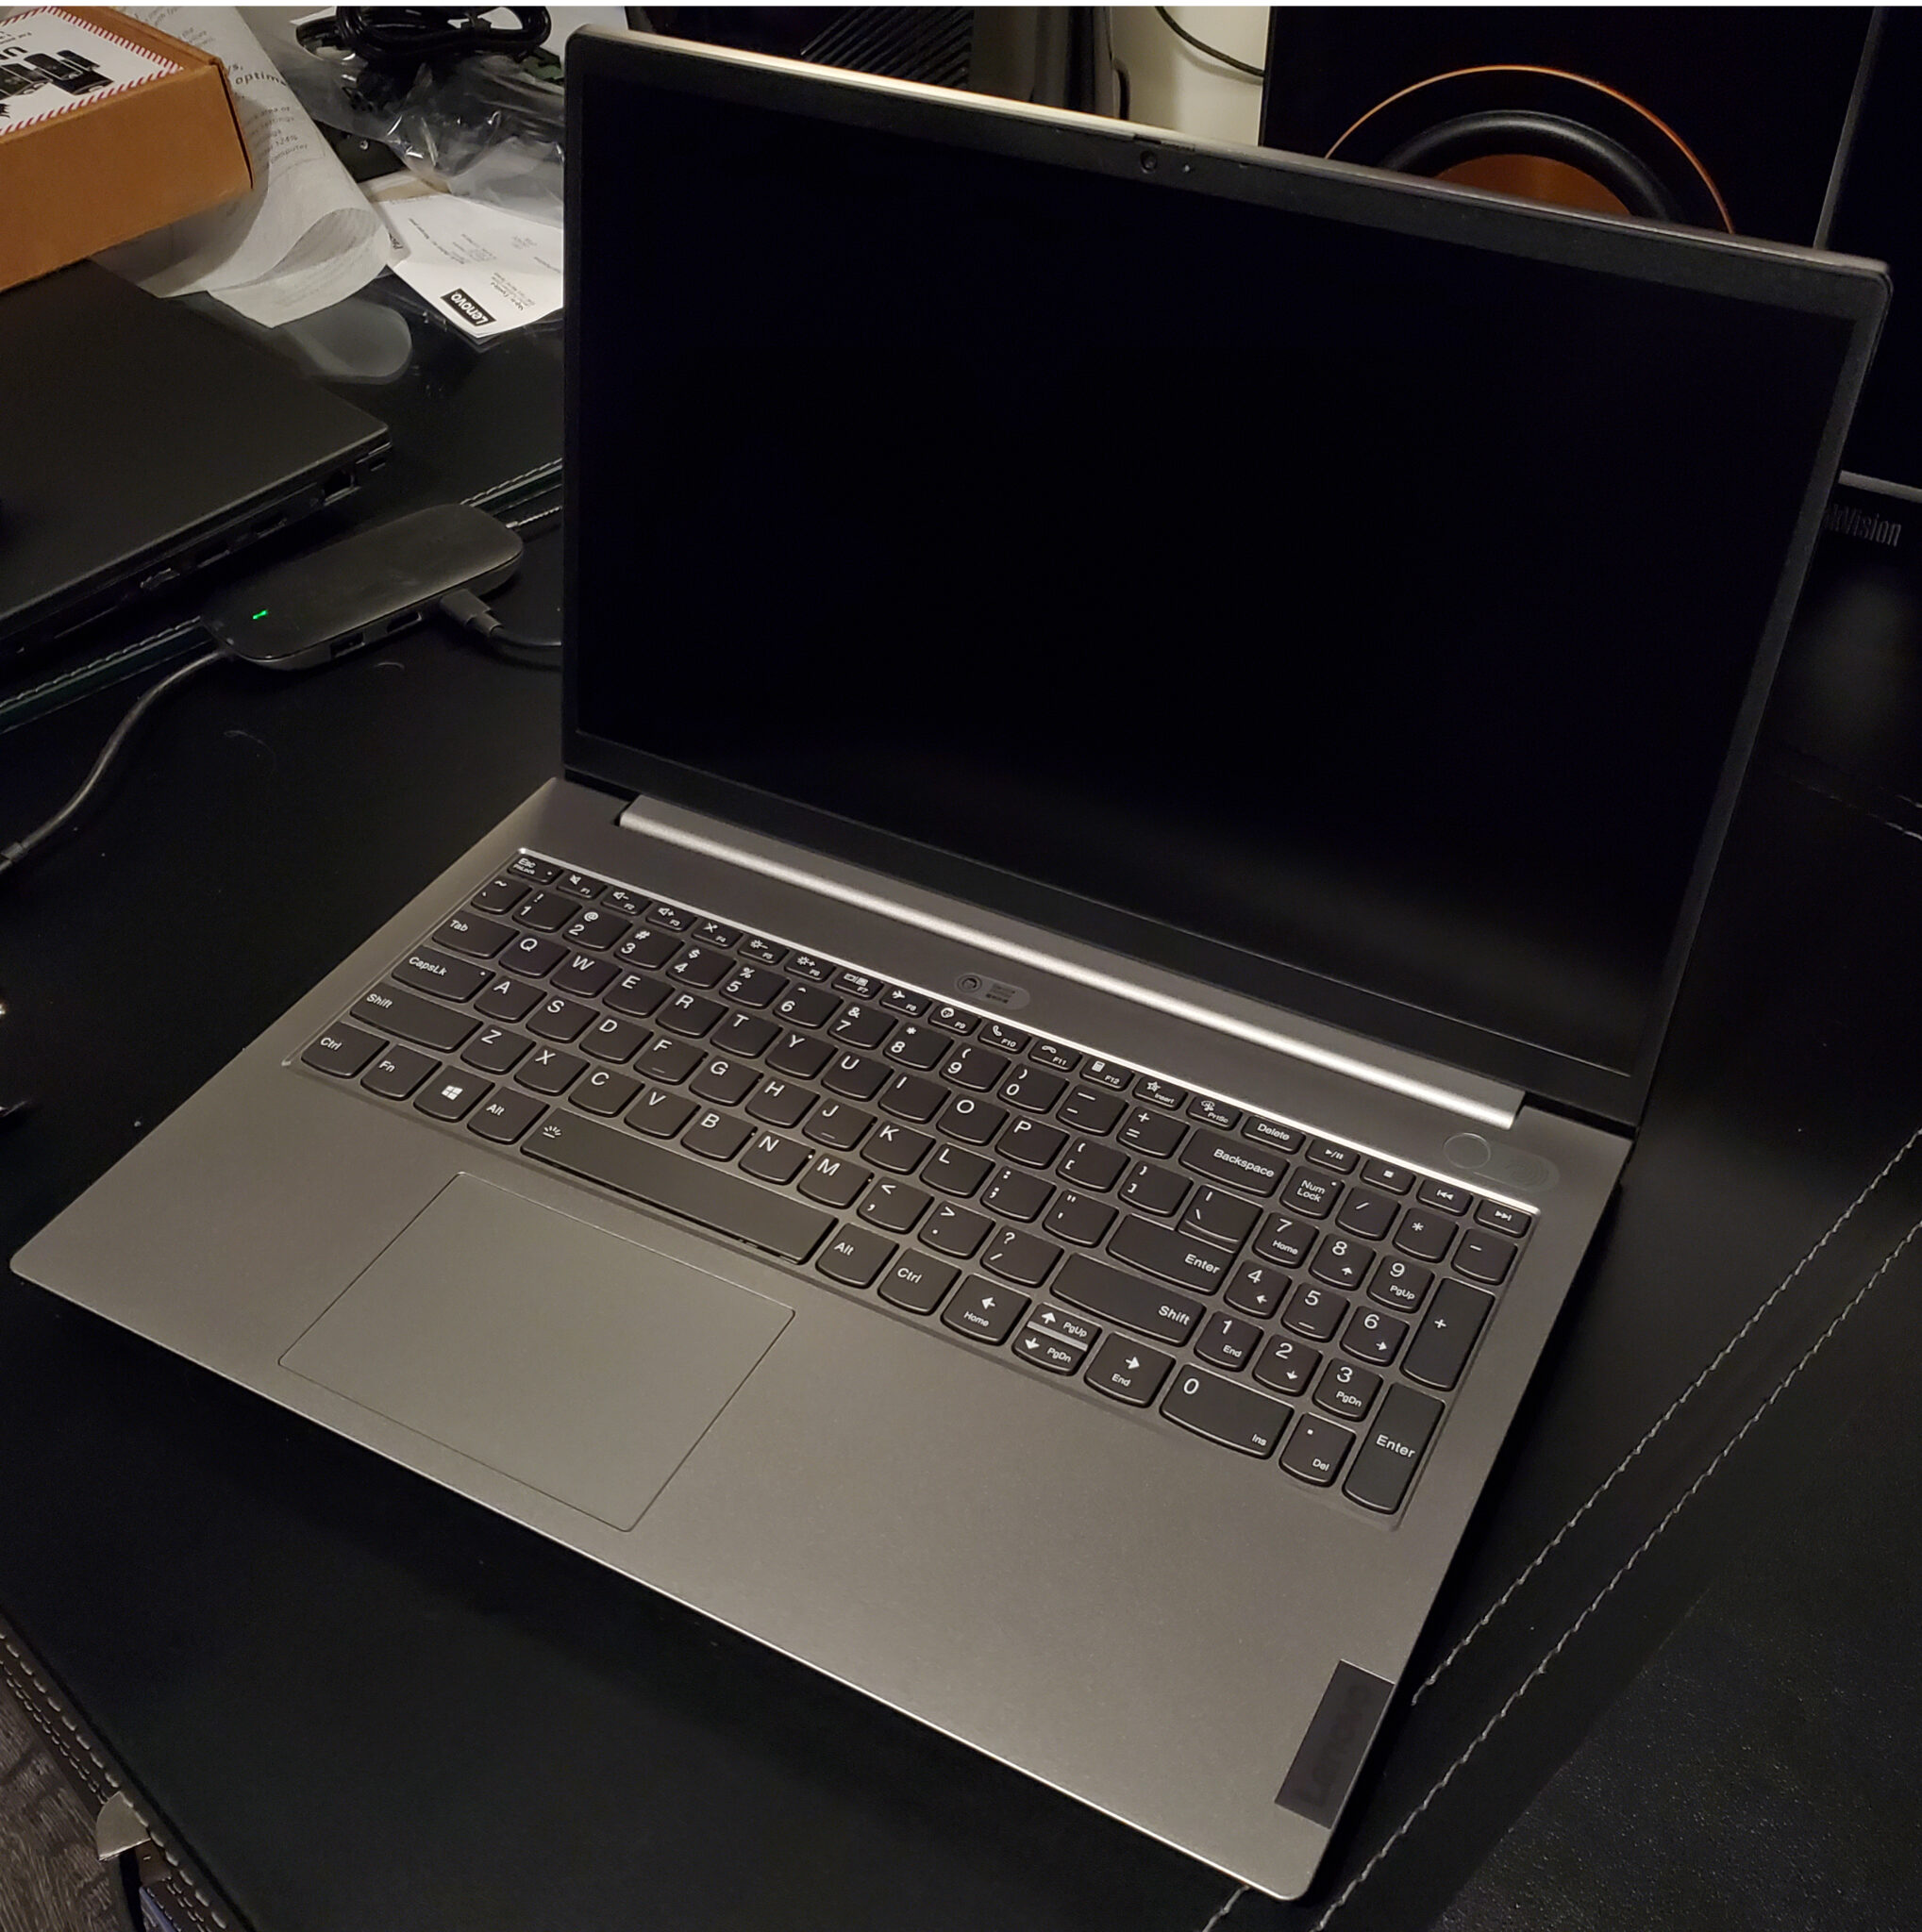 2021 Linux Review of the Lenovo ThinkBook 15 Gen 2 AMD